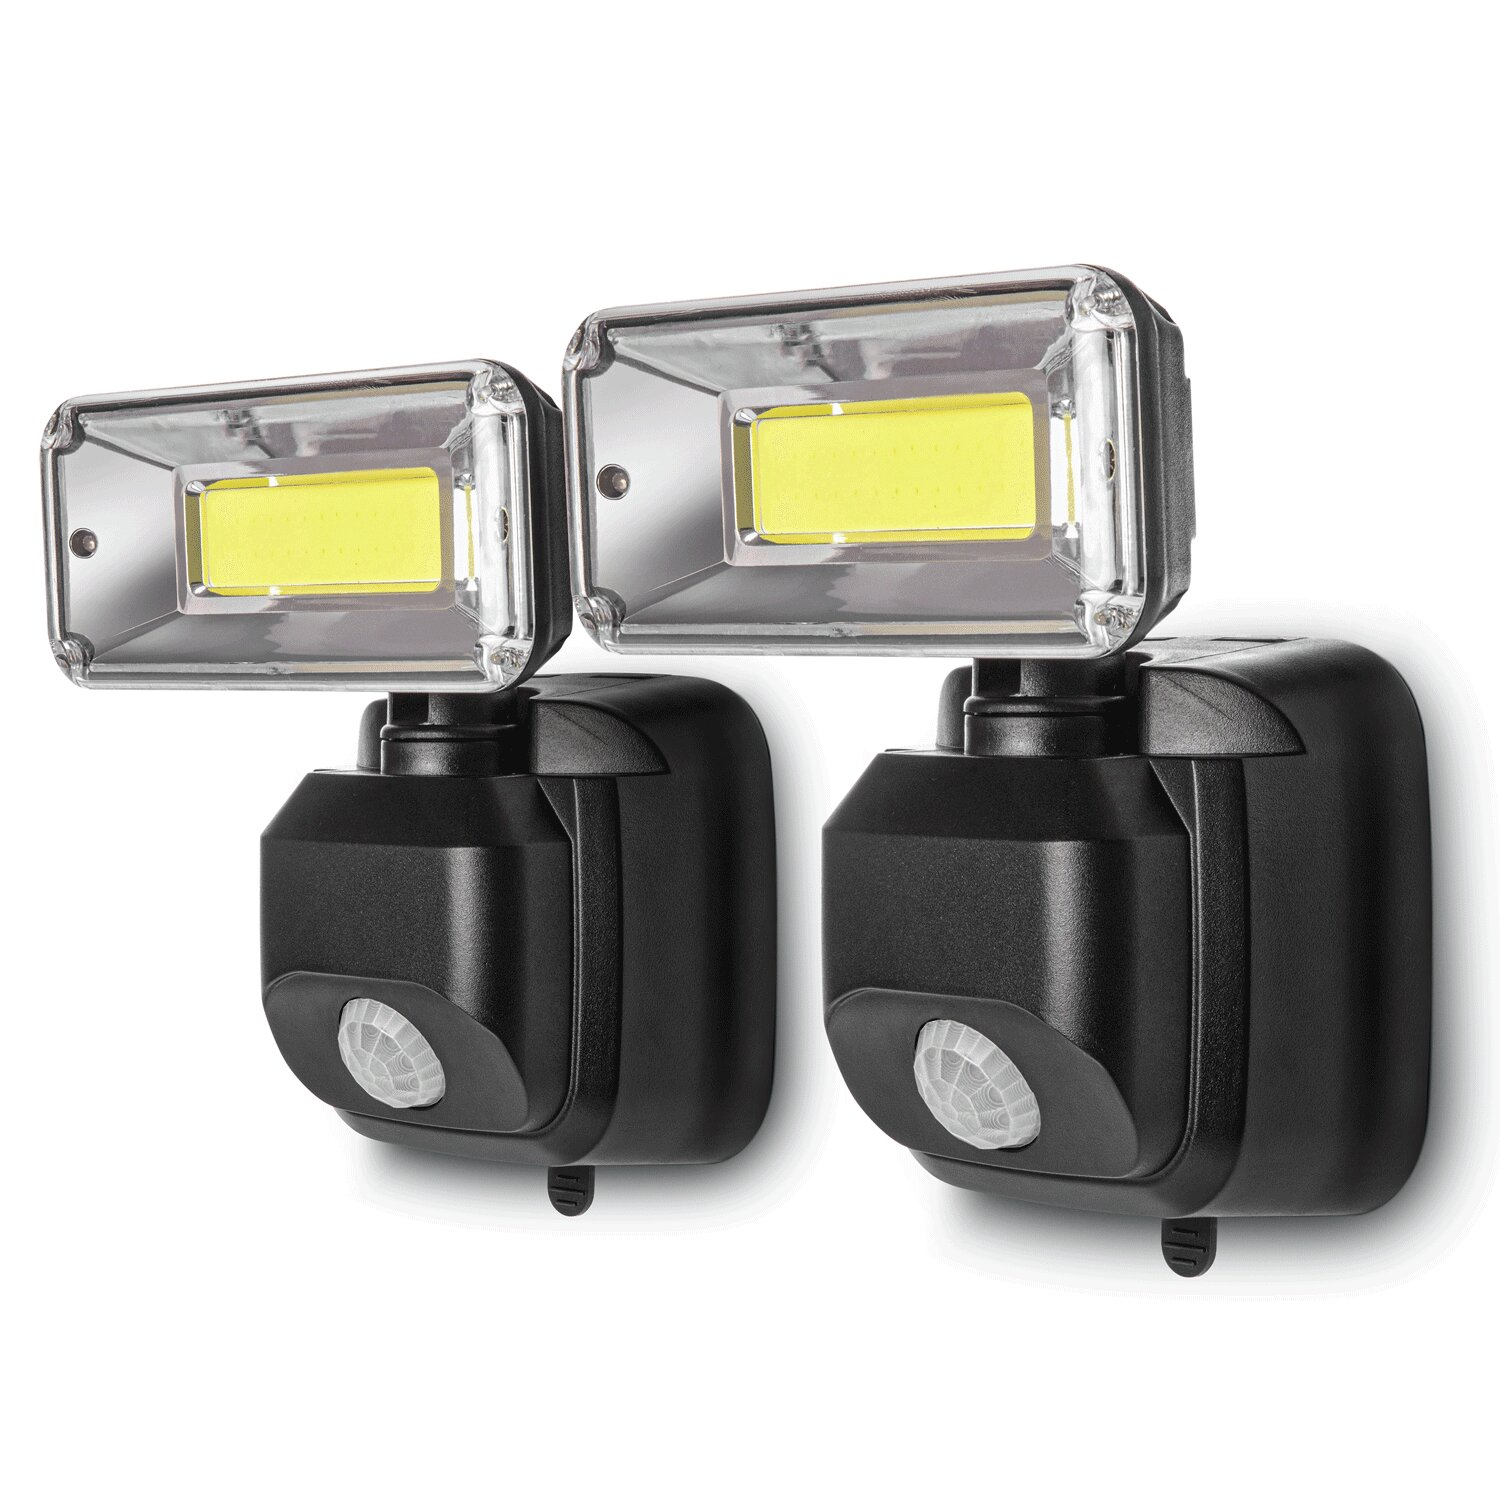 Home Zone Security 36 Watt Led Dusk To Dawn Battery Powered Outdoor Security Area Light With Motion Sensor Lights Pack Of 2 Reviews Wayfair